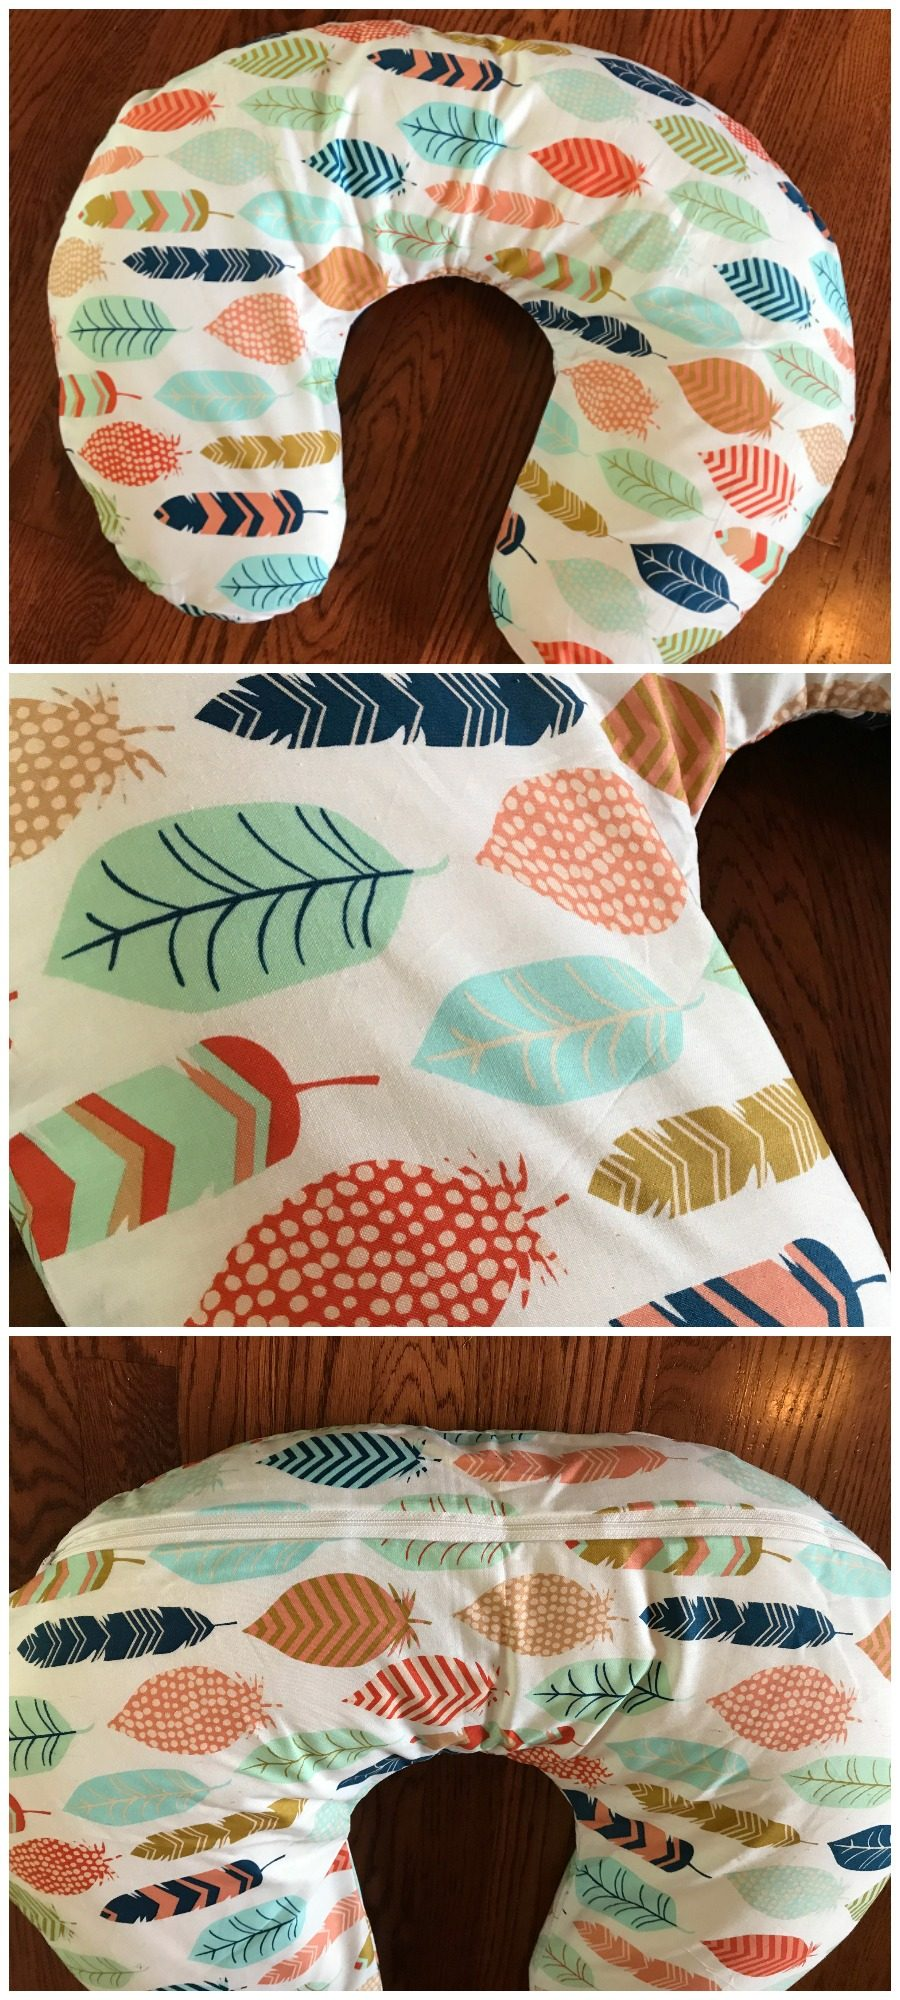 Cute Boppy Pillows : SewMamaSewCo Boppy Pillow Cover Review and Giveaway!